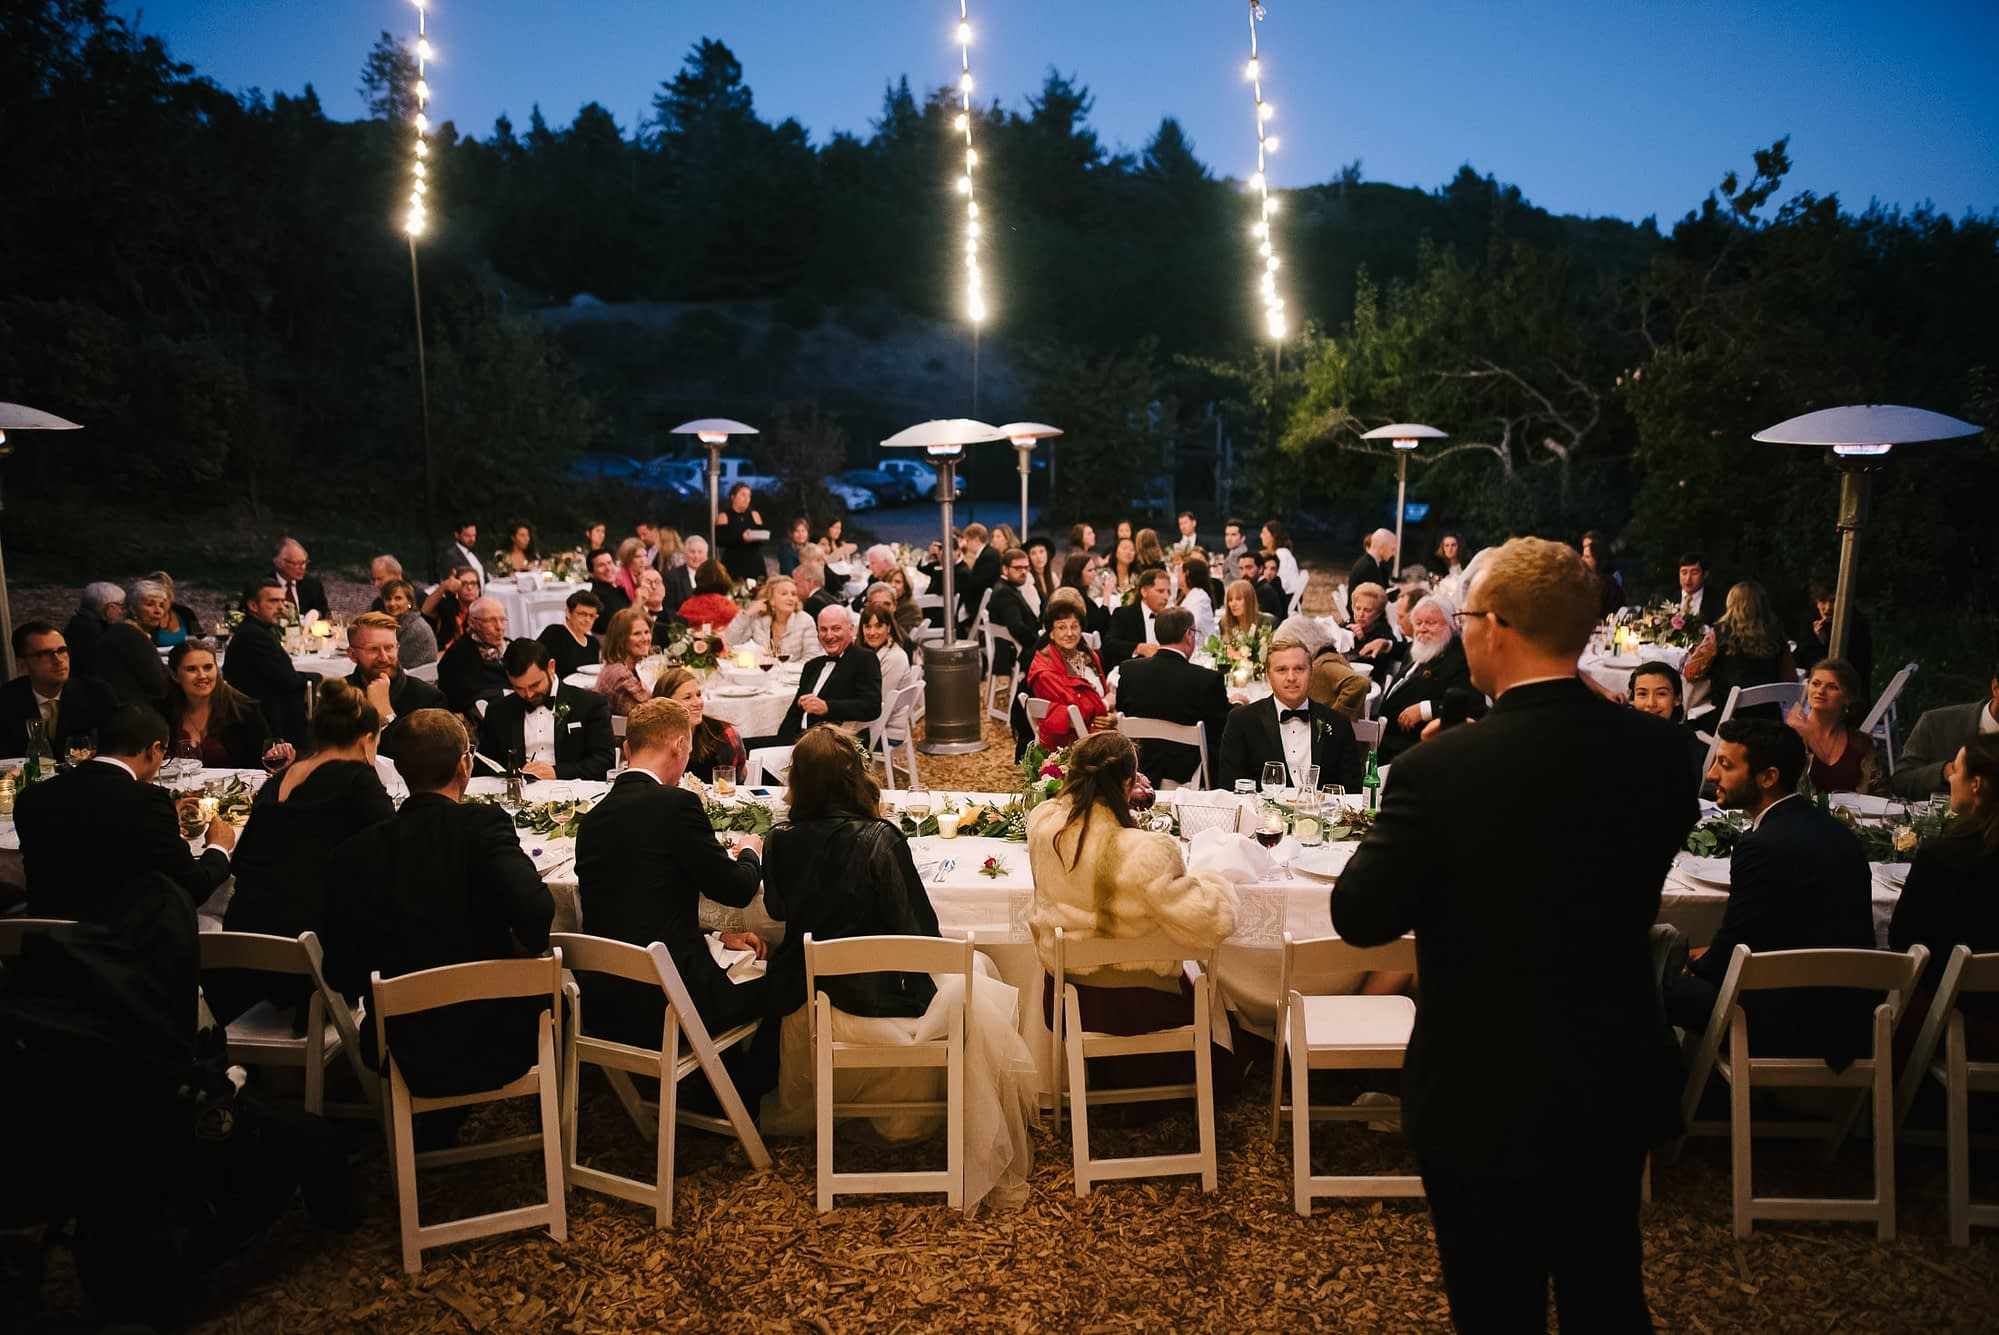 Oz Farm Wedding Reception